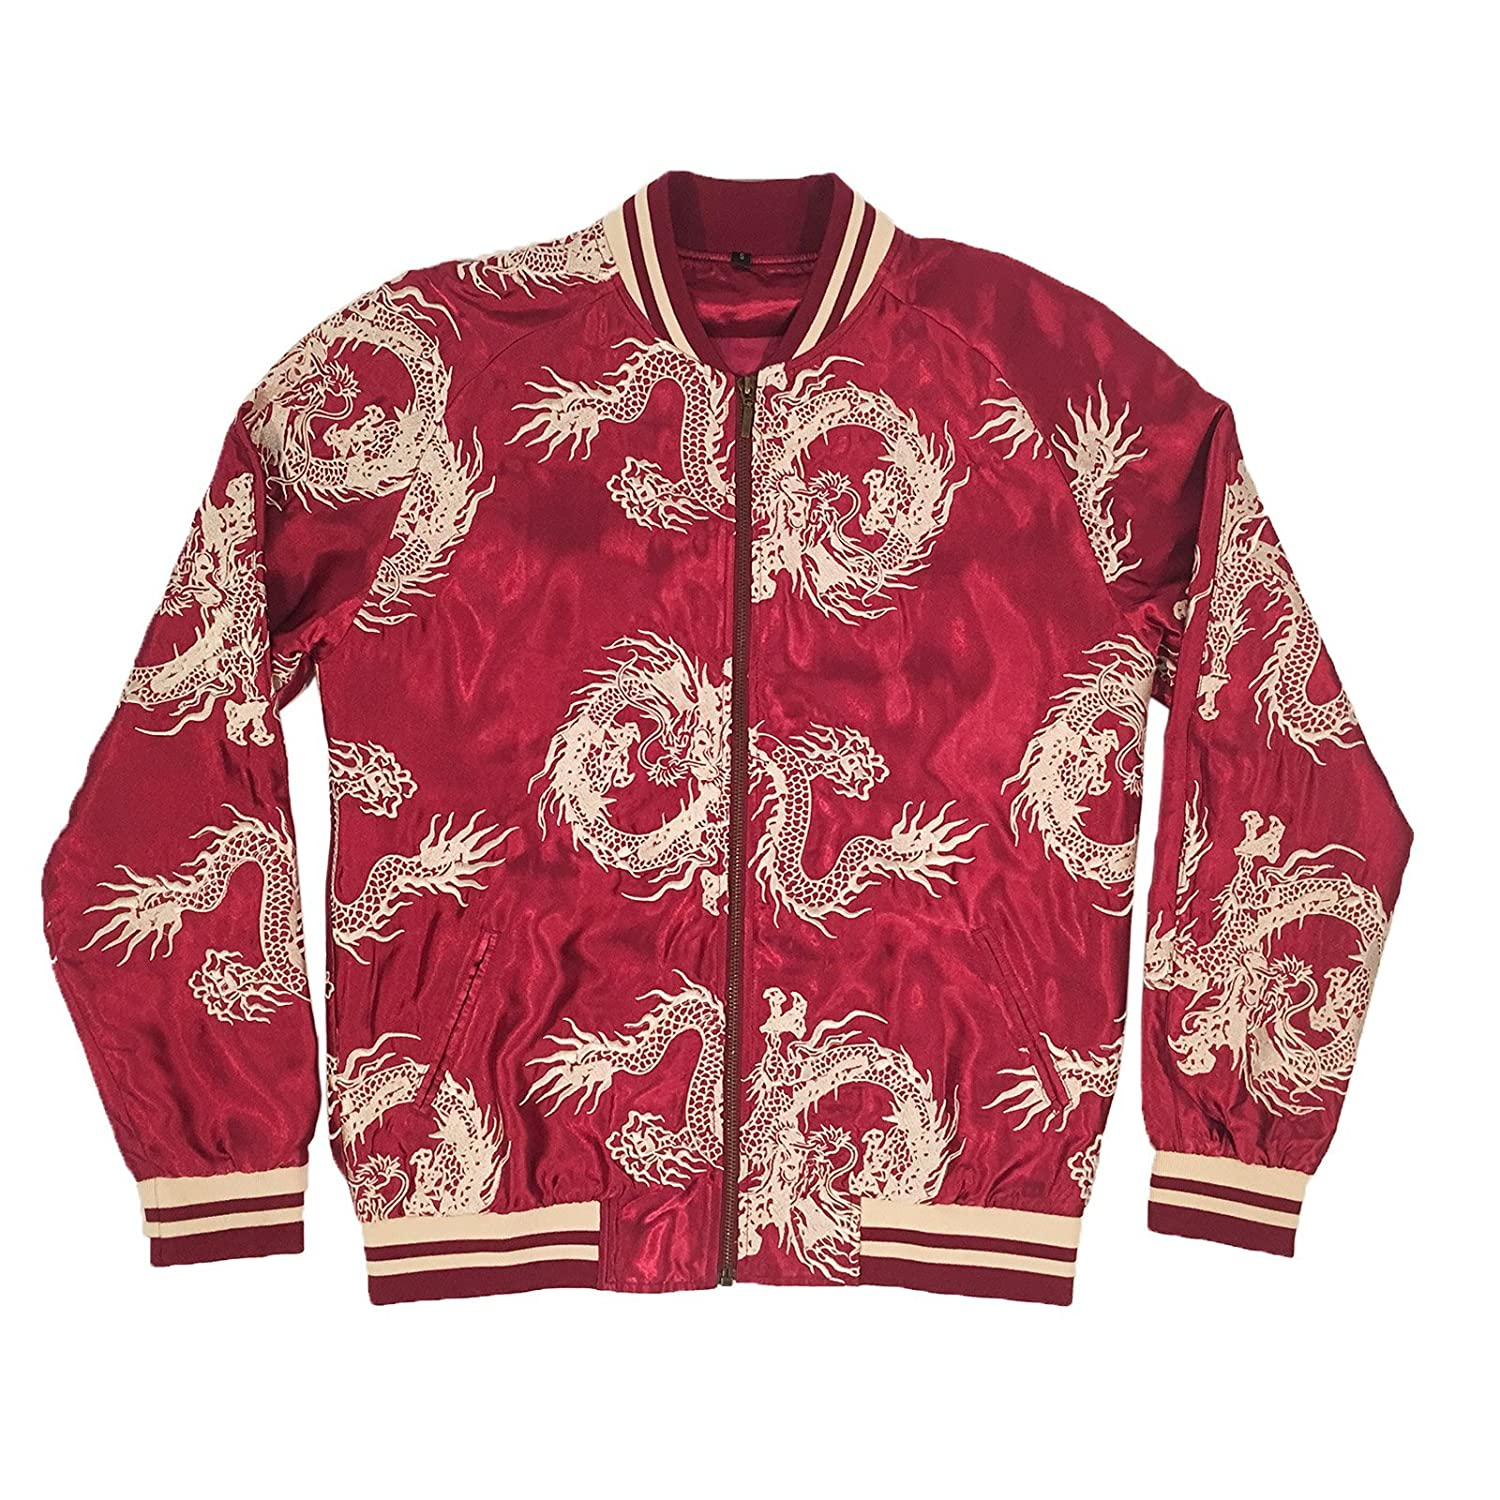 Standard Issue NYC Unisex Burgundy/Gold All-Over Dragon Souvenir Jacket